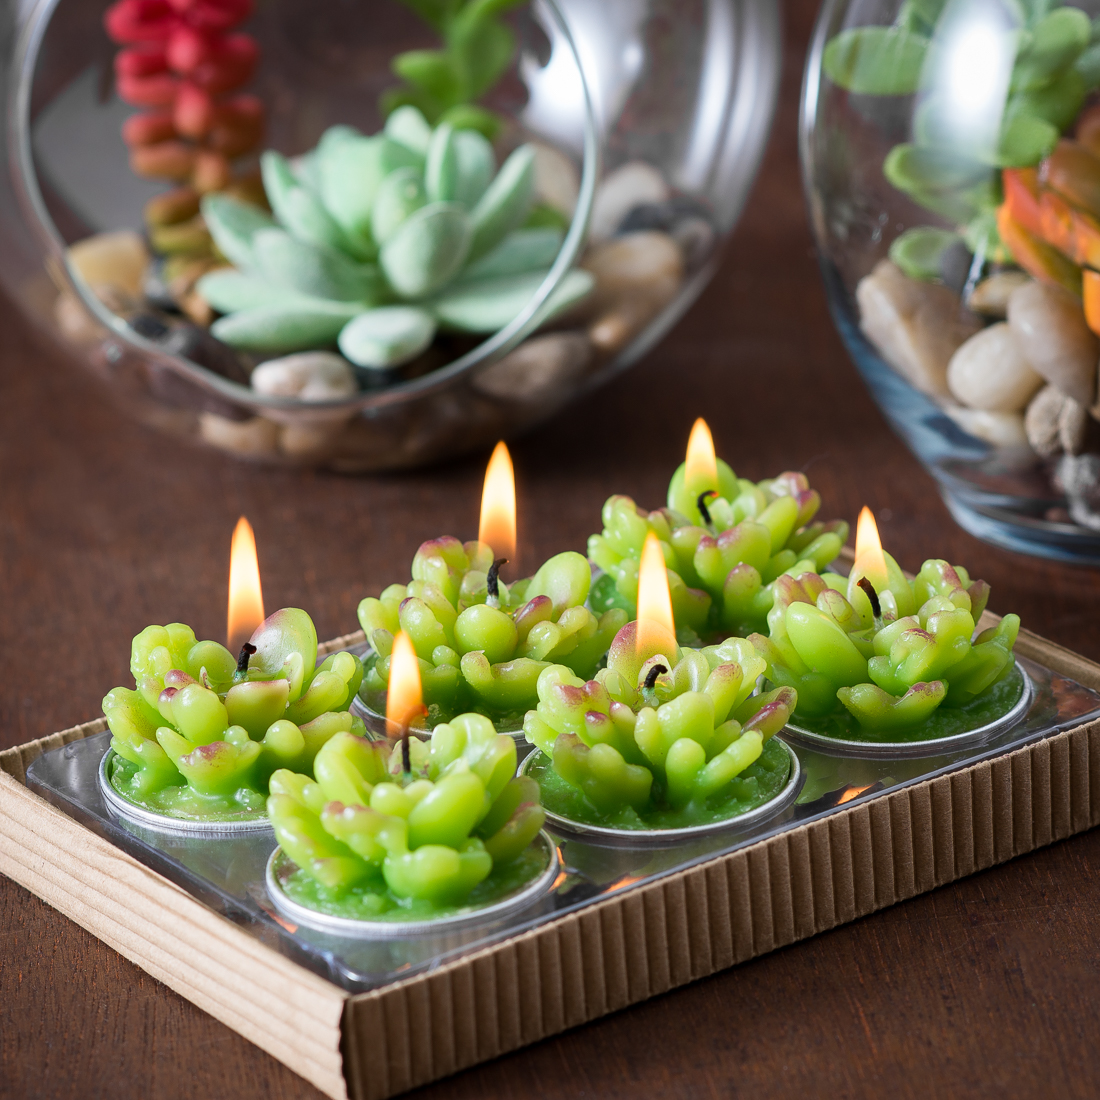 Succulent Cactus Tealights in Gift Box